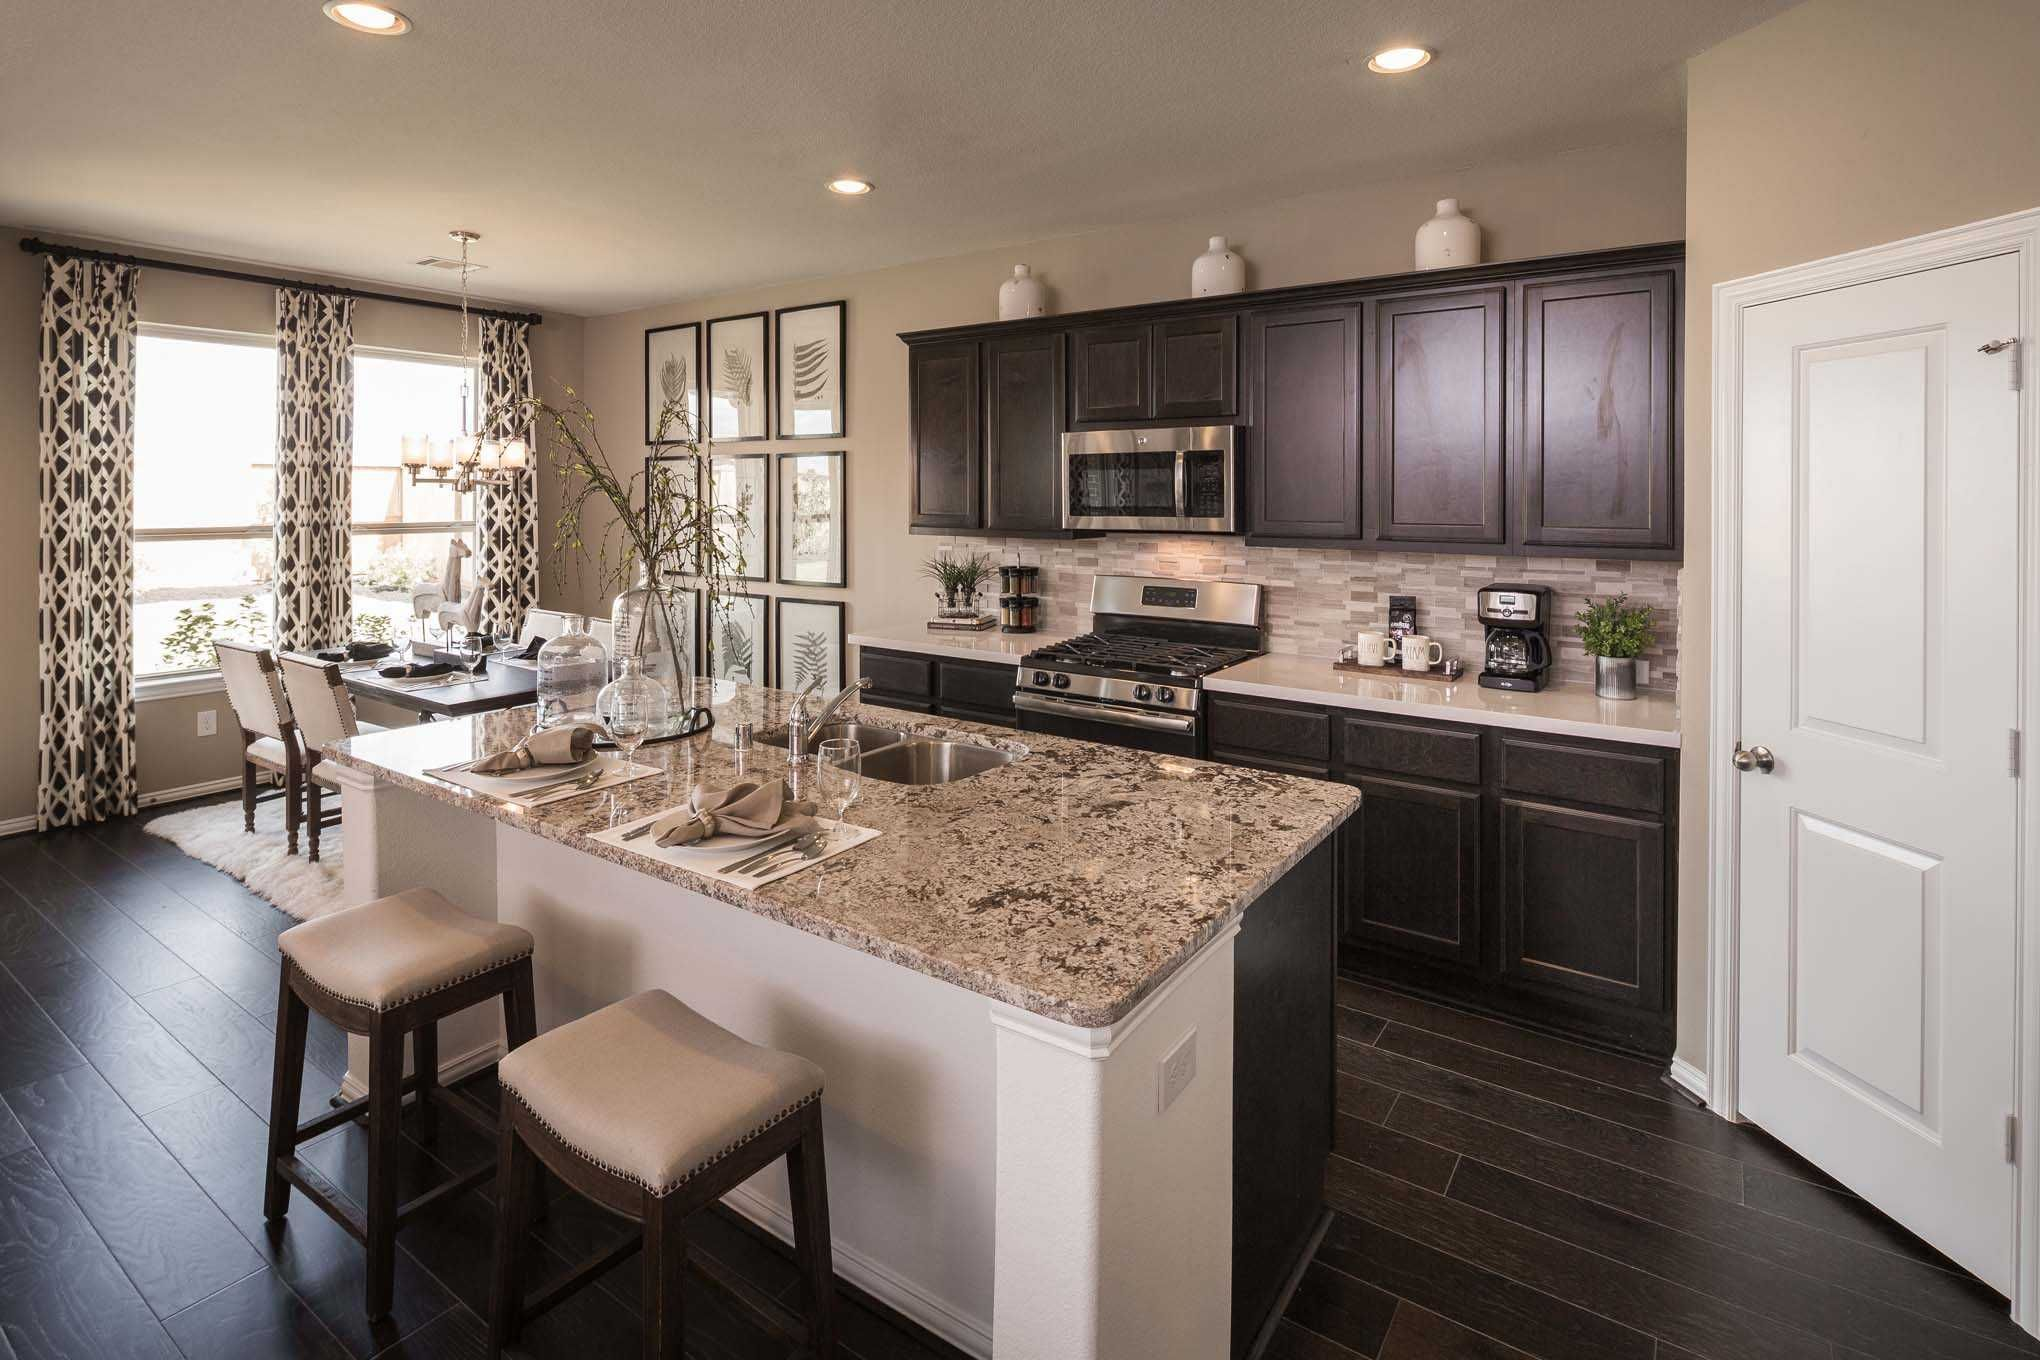 Kitchen Design Houston Alluring Highland Homes Richmond Model Home In Houston Texas Jordan Ranch Design Inspiration